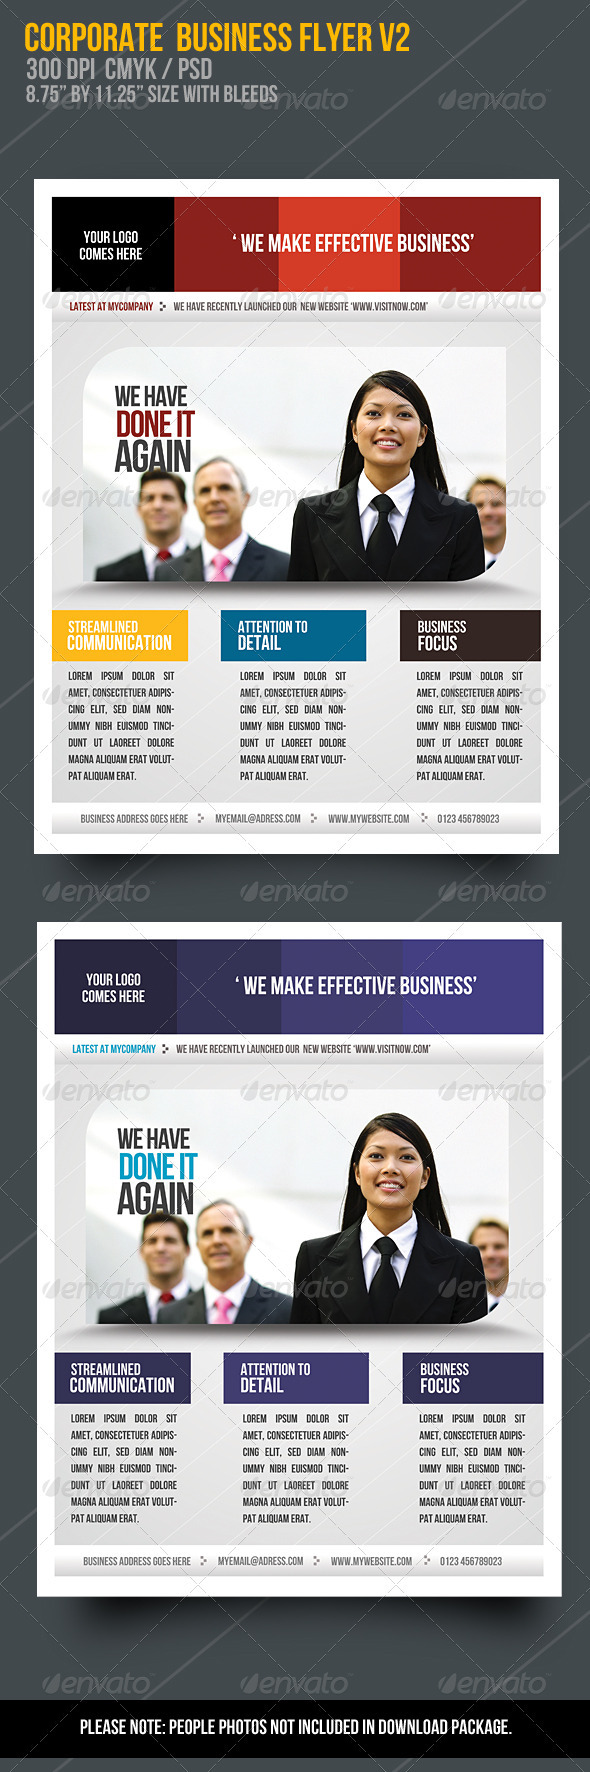 Corporate Business Flyer V2  - Corporate Flyers